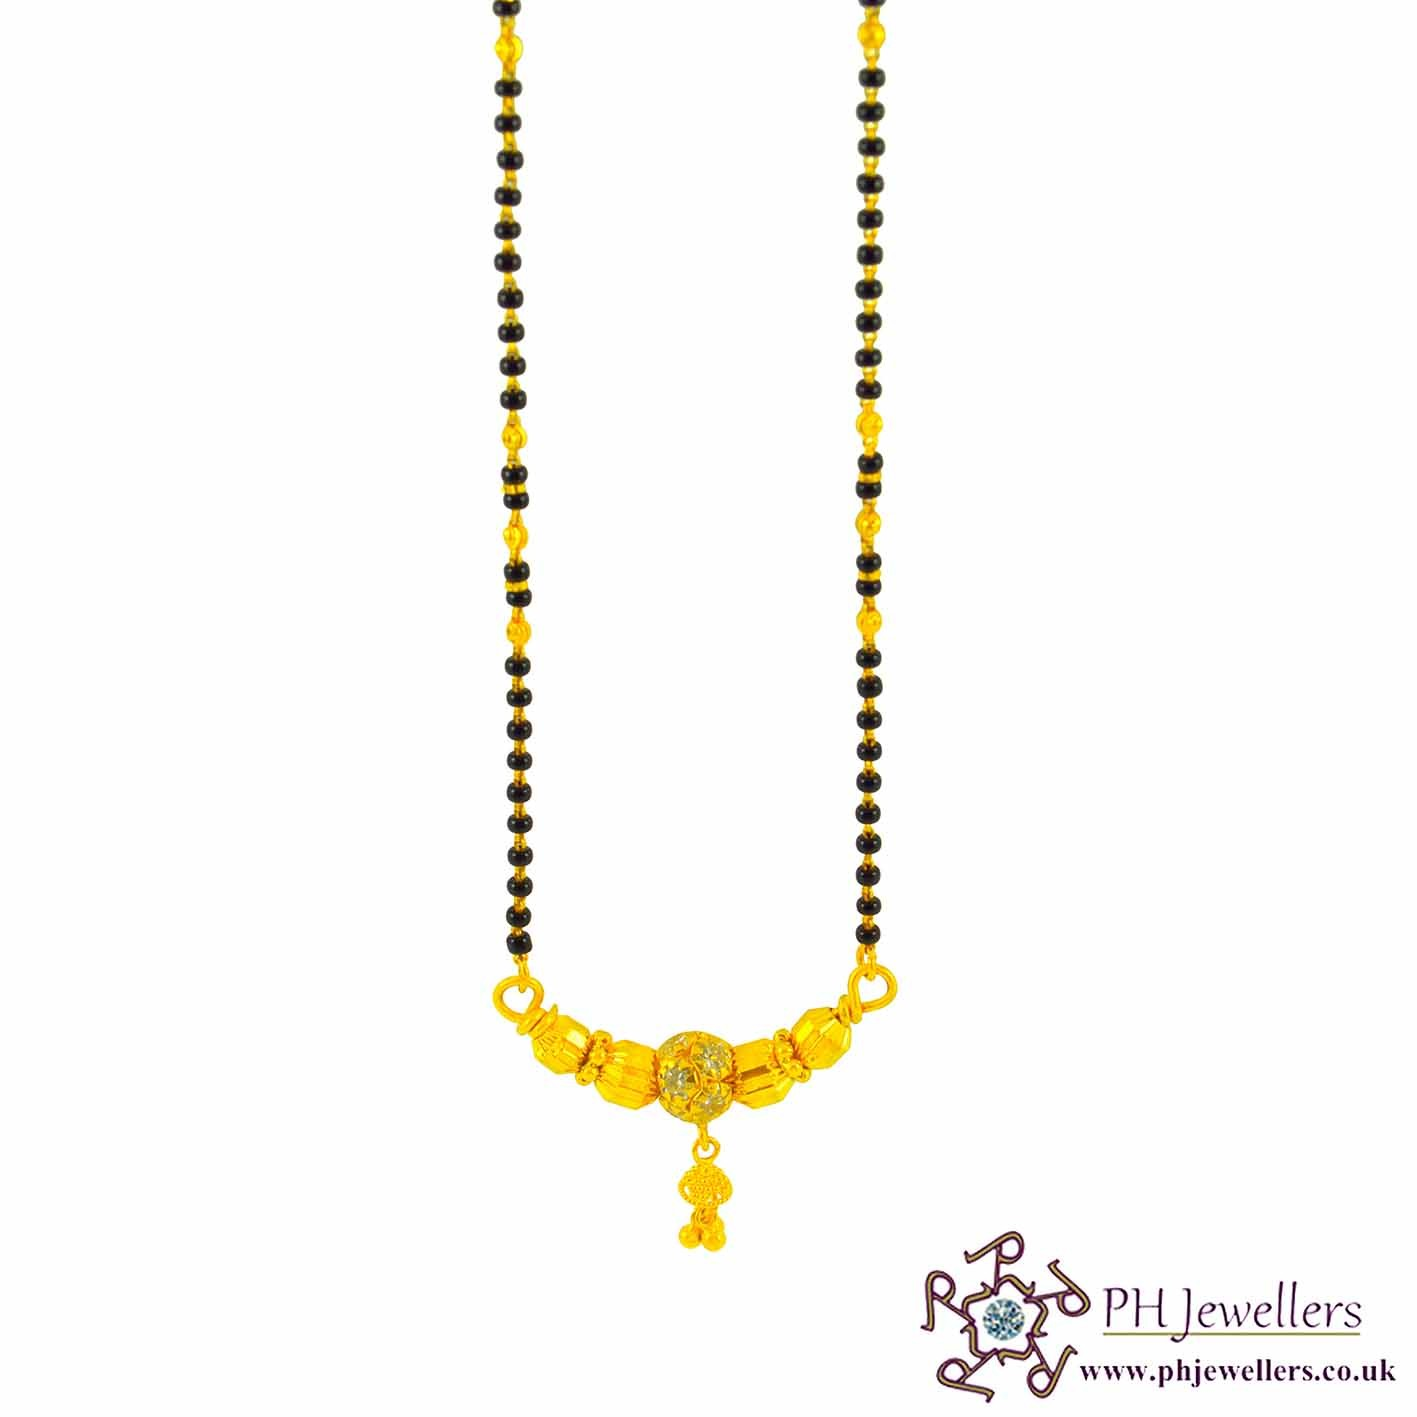 22ct 916 Hallmark Yellow Gold Black Bead Chain Mangalsutra CZ MS3